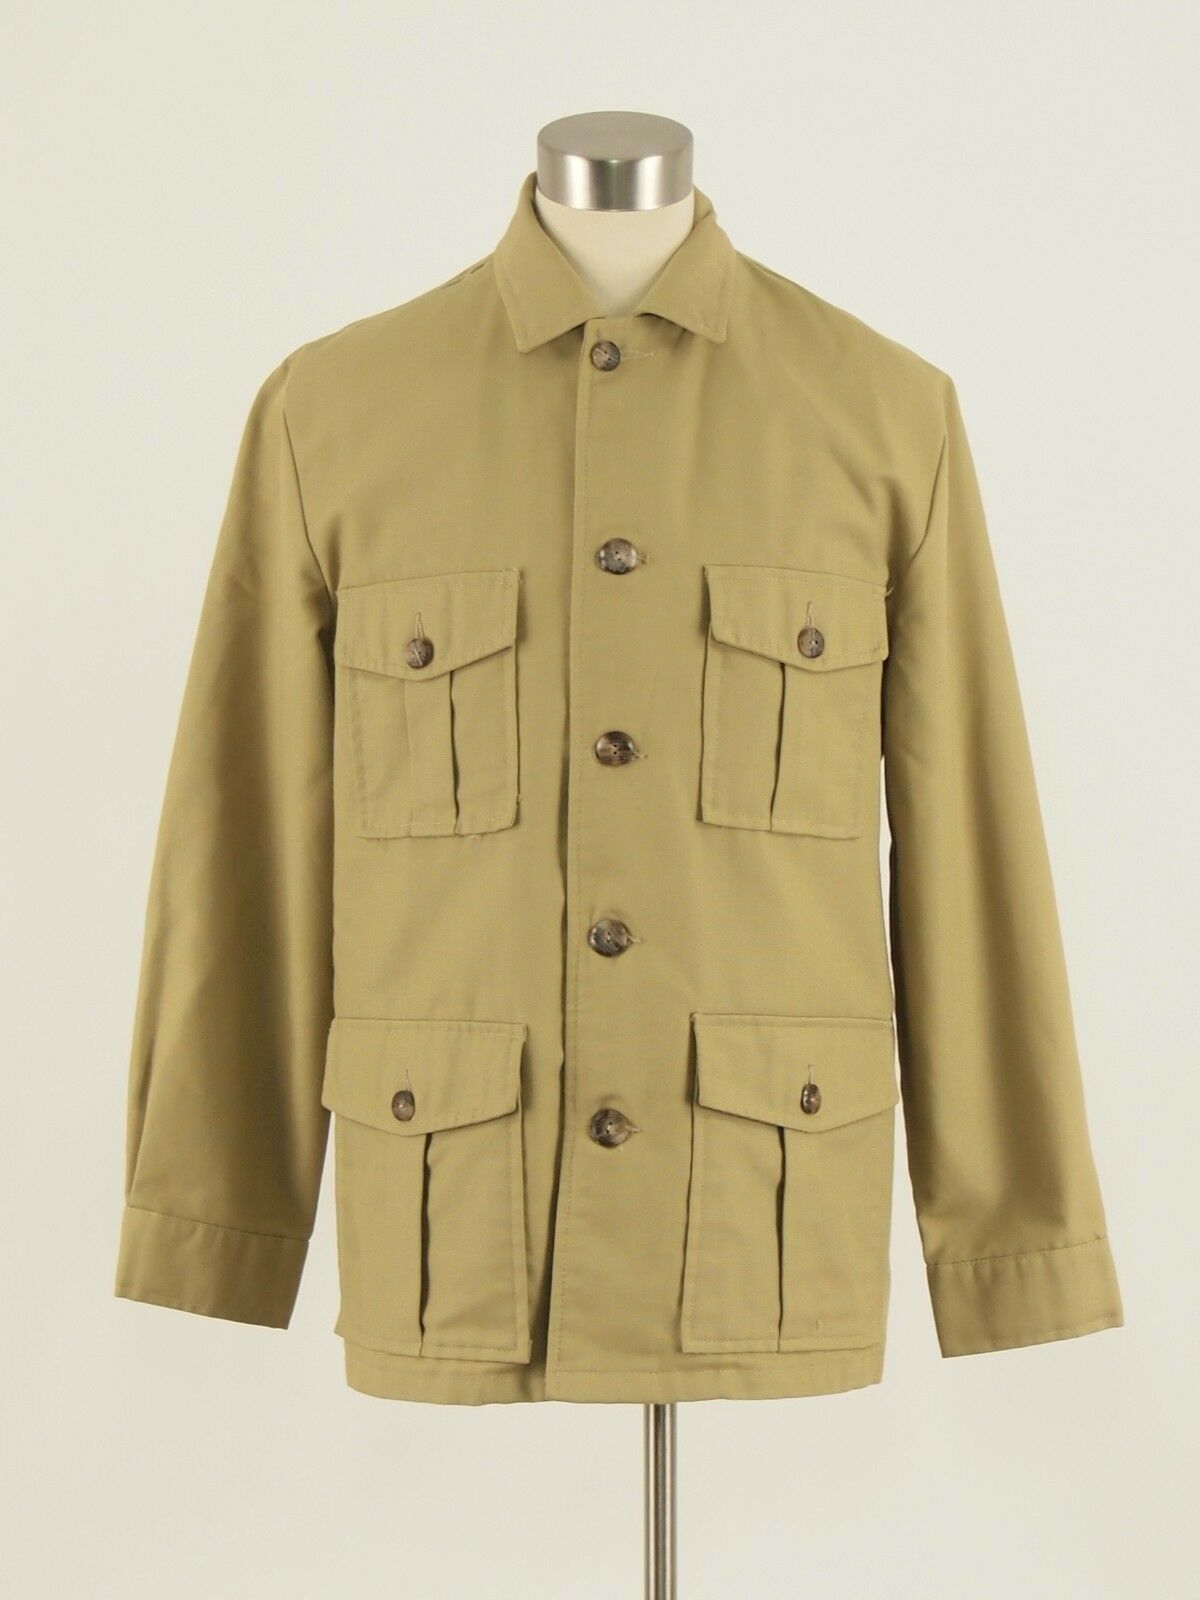 1970s FIELD and STREAM Vintage Tan Outdoor Non-insulated Hunting Jacket 42